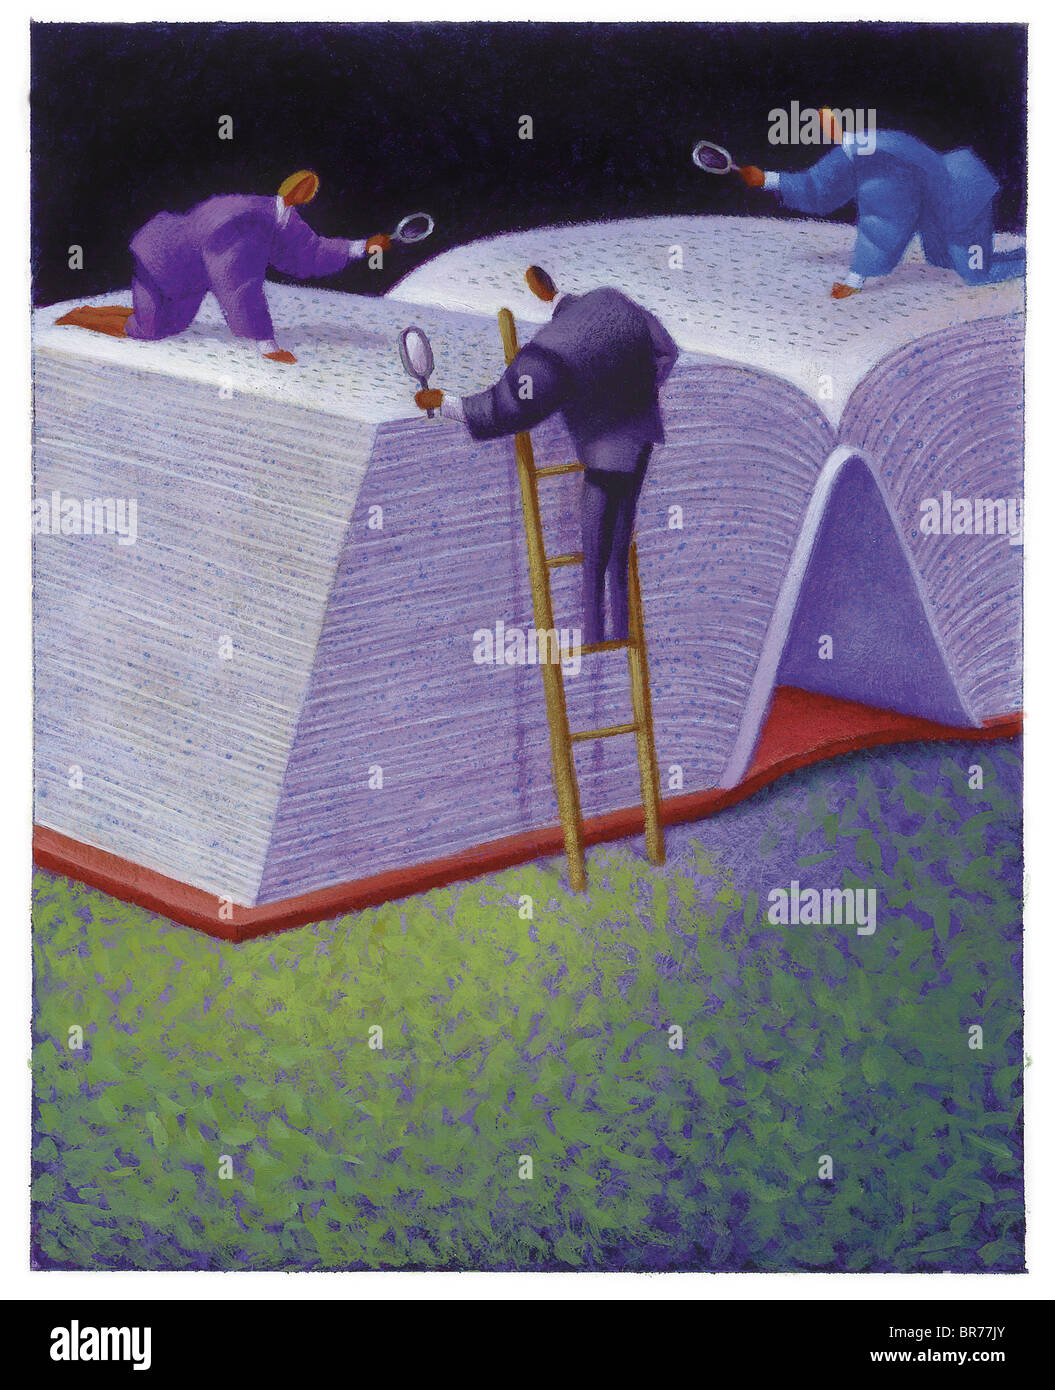 Three businessmen looking at giant book - Stock Image